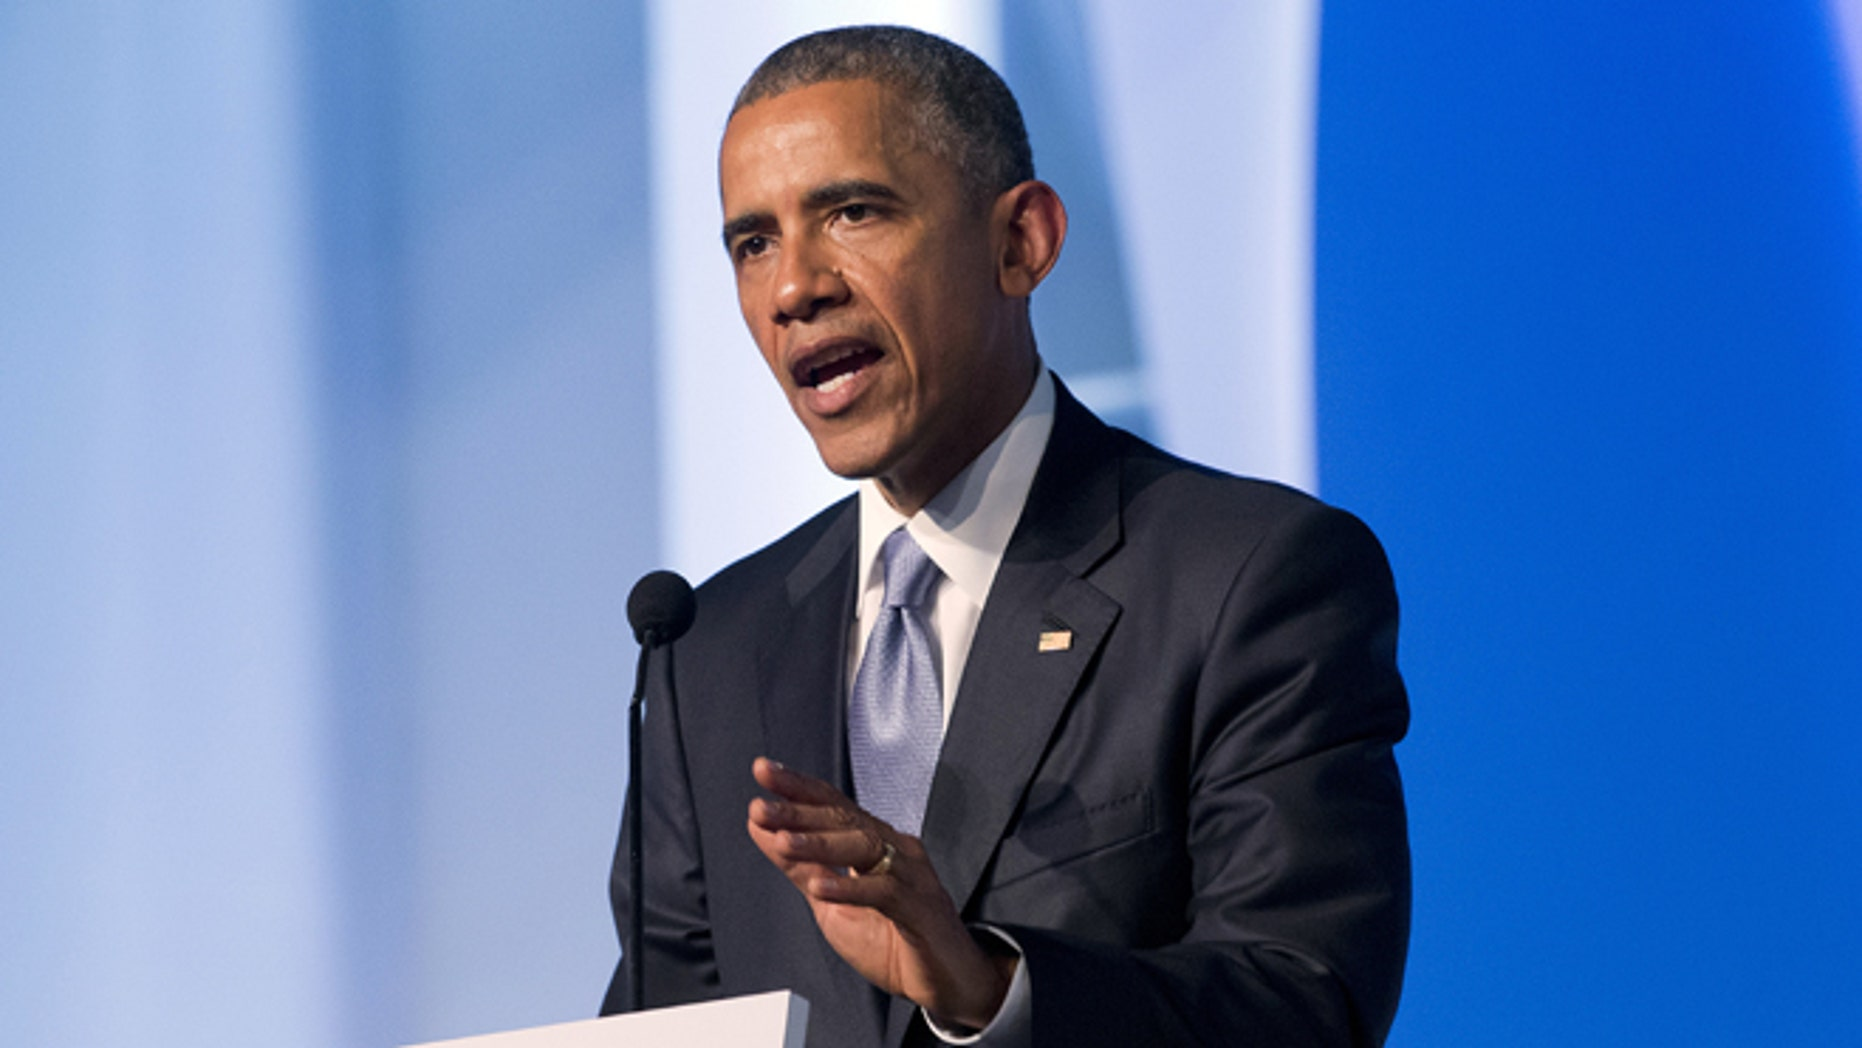 U.S. President Barack Obama speaks at the Civil Society Forum in Panama City, Panama, Friday, April 10, 2015. Obama is in Panama to attend the VII Summit of the Americas. (AP Photo/Pablo Martinez Monsivais)